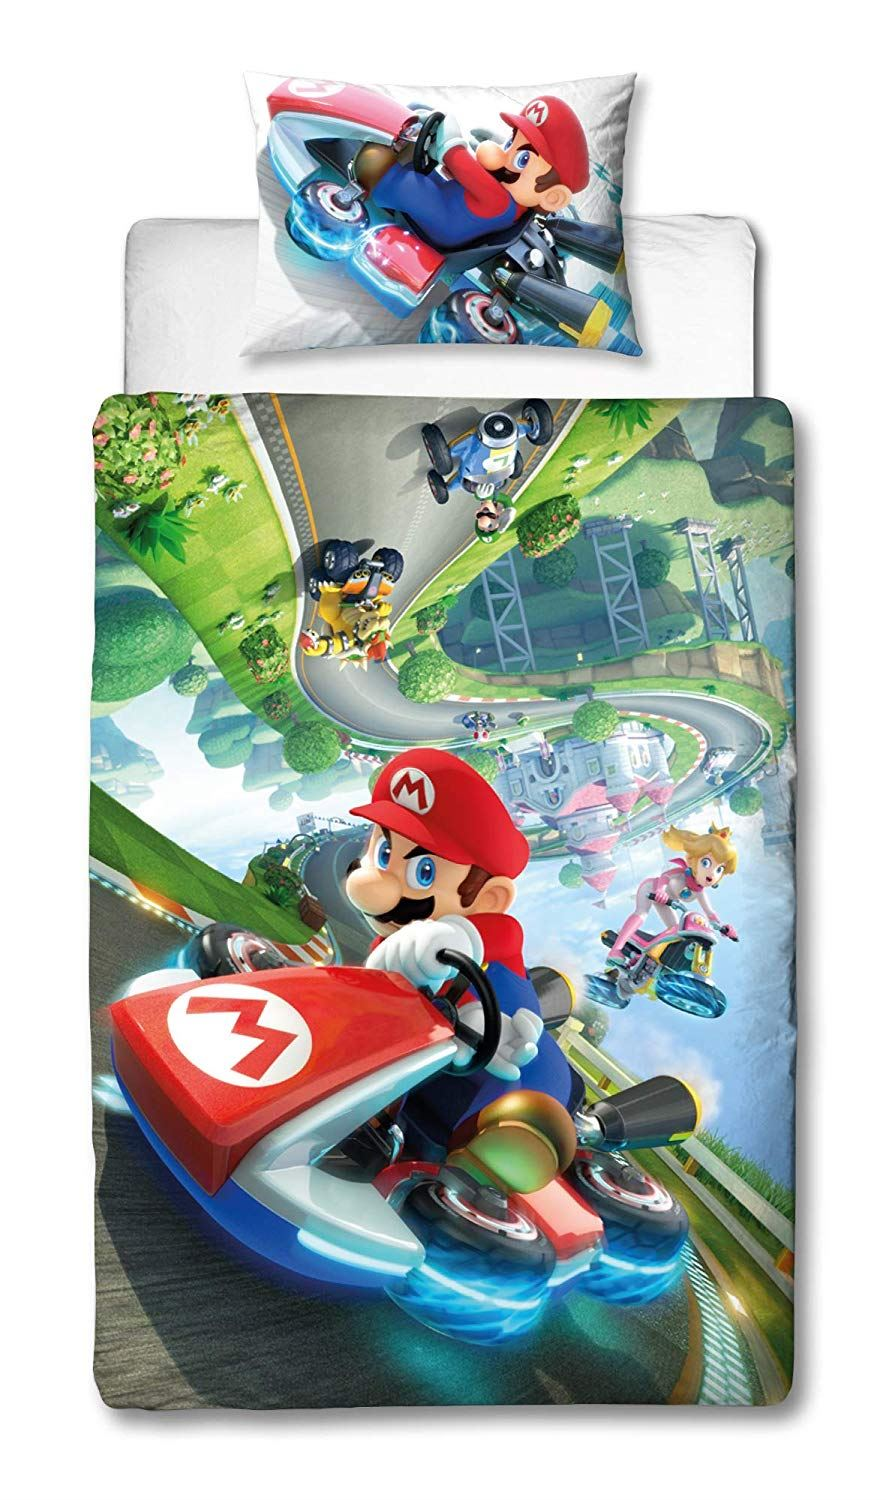 Official-Nintendo-Super-Mario-Licensed-Duvet-Covers-Single-Double-Odyssey-Maker thumbnail 9